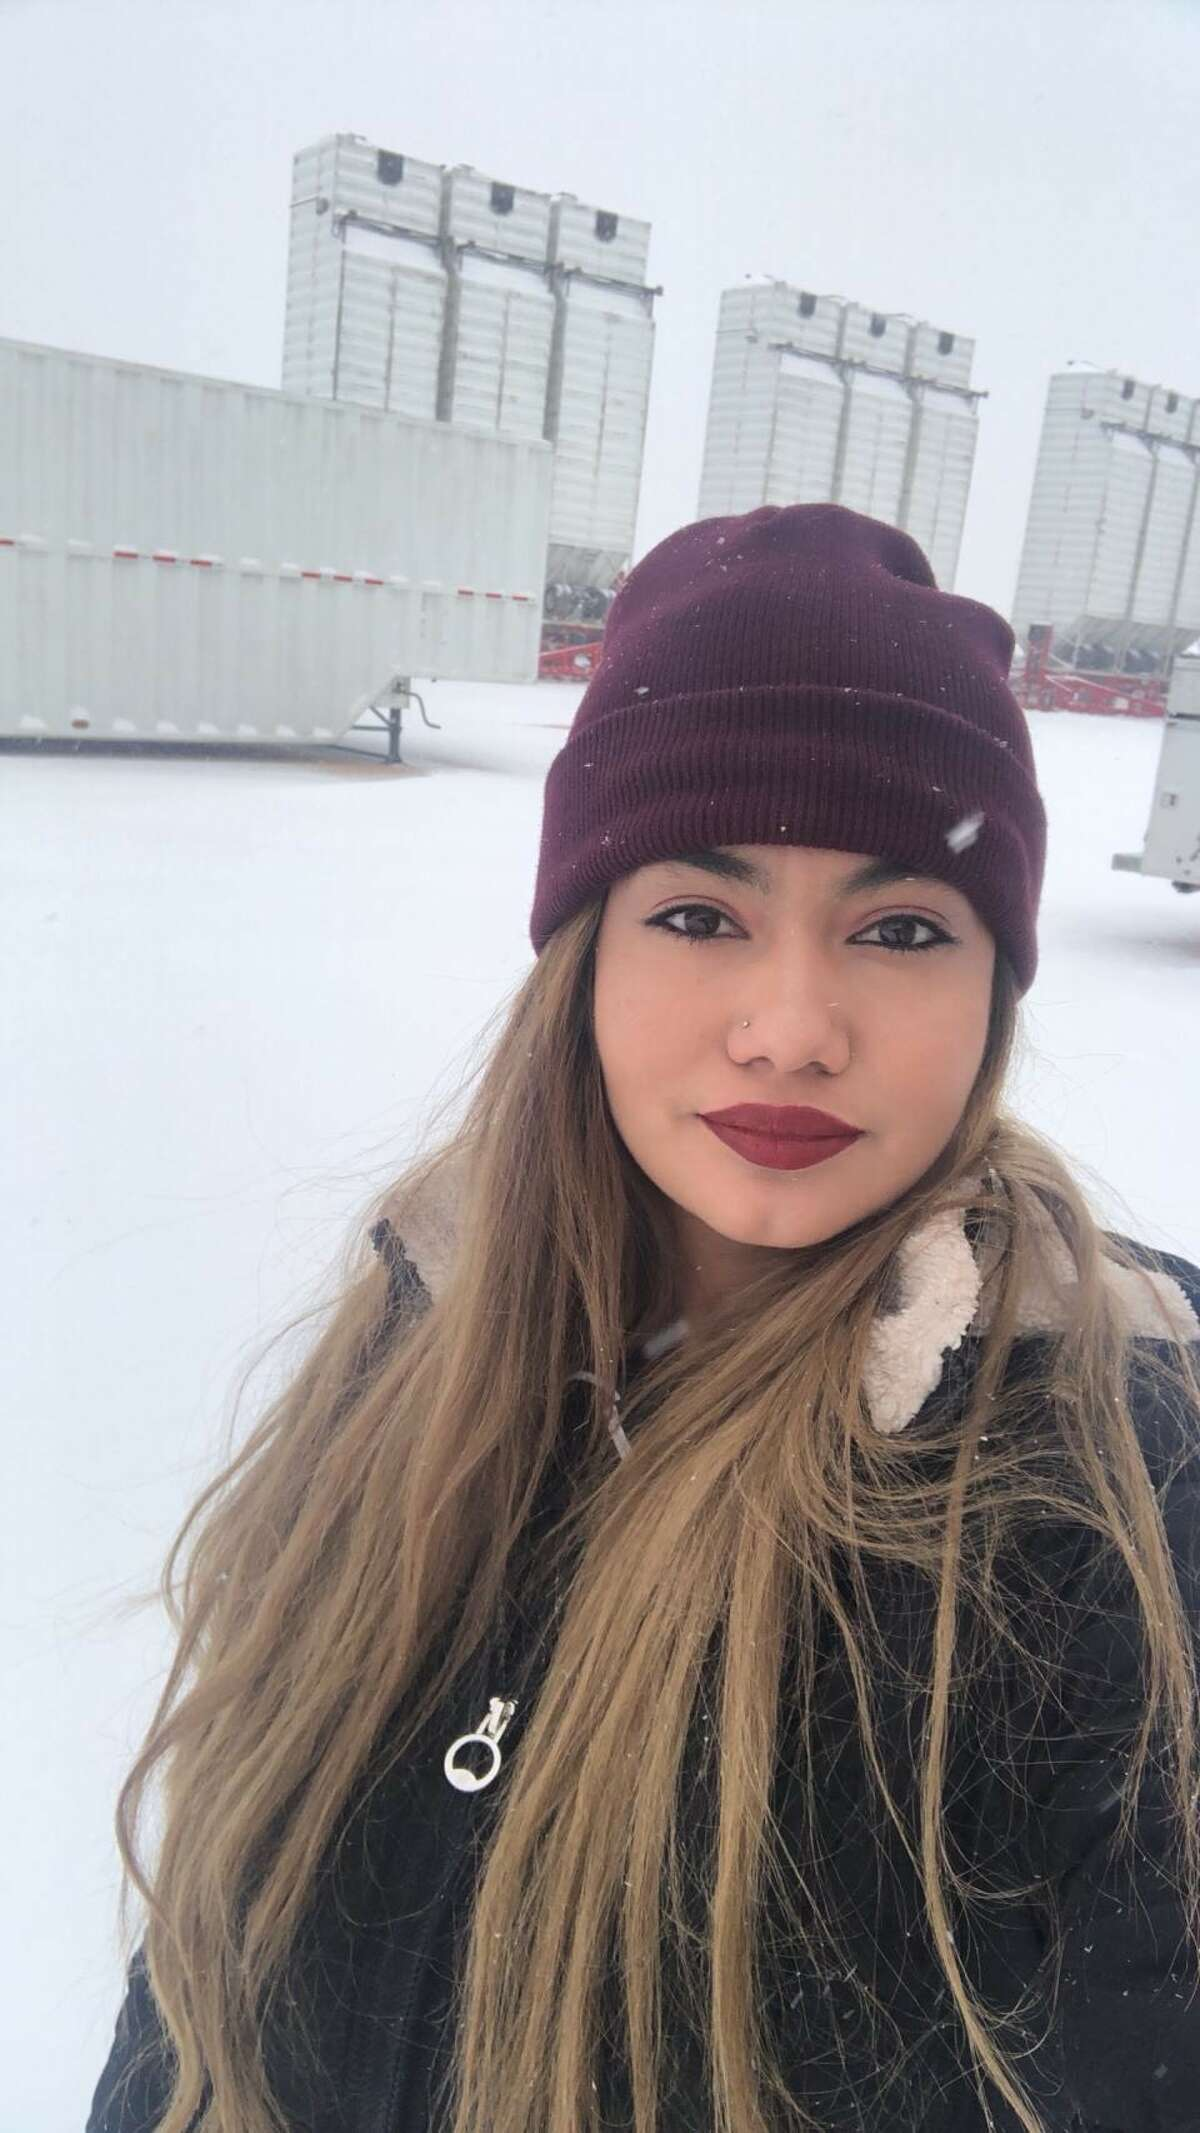 Aimee Villarreal during a recent snowfall at the ProPetro Services Midland yard.